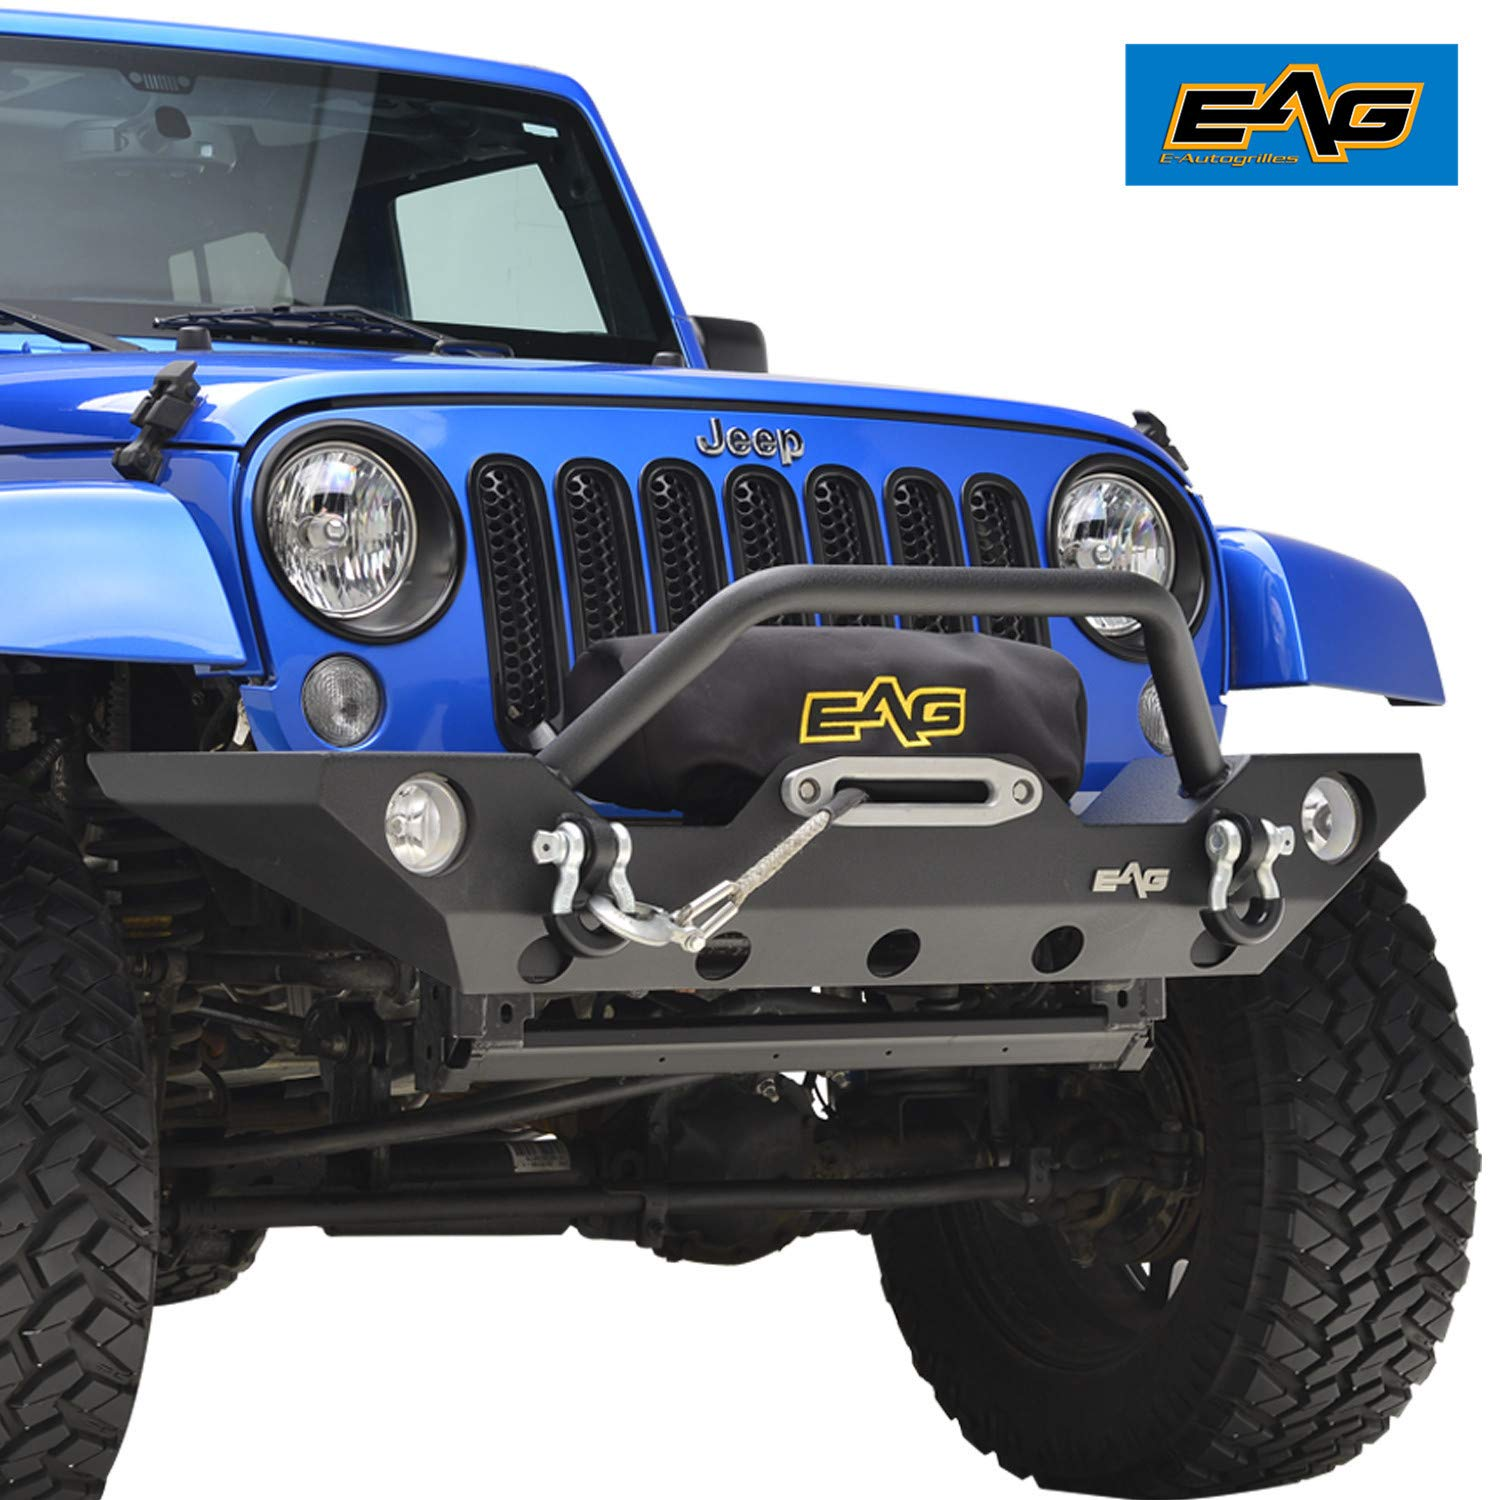 E-Autogrilles 51-0328 EAG 07-18 Jeep Wrangler JK Rock Crawler Off road Front Bumper with Winch Mounting Plate